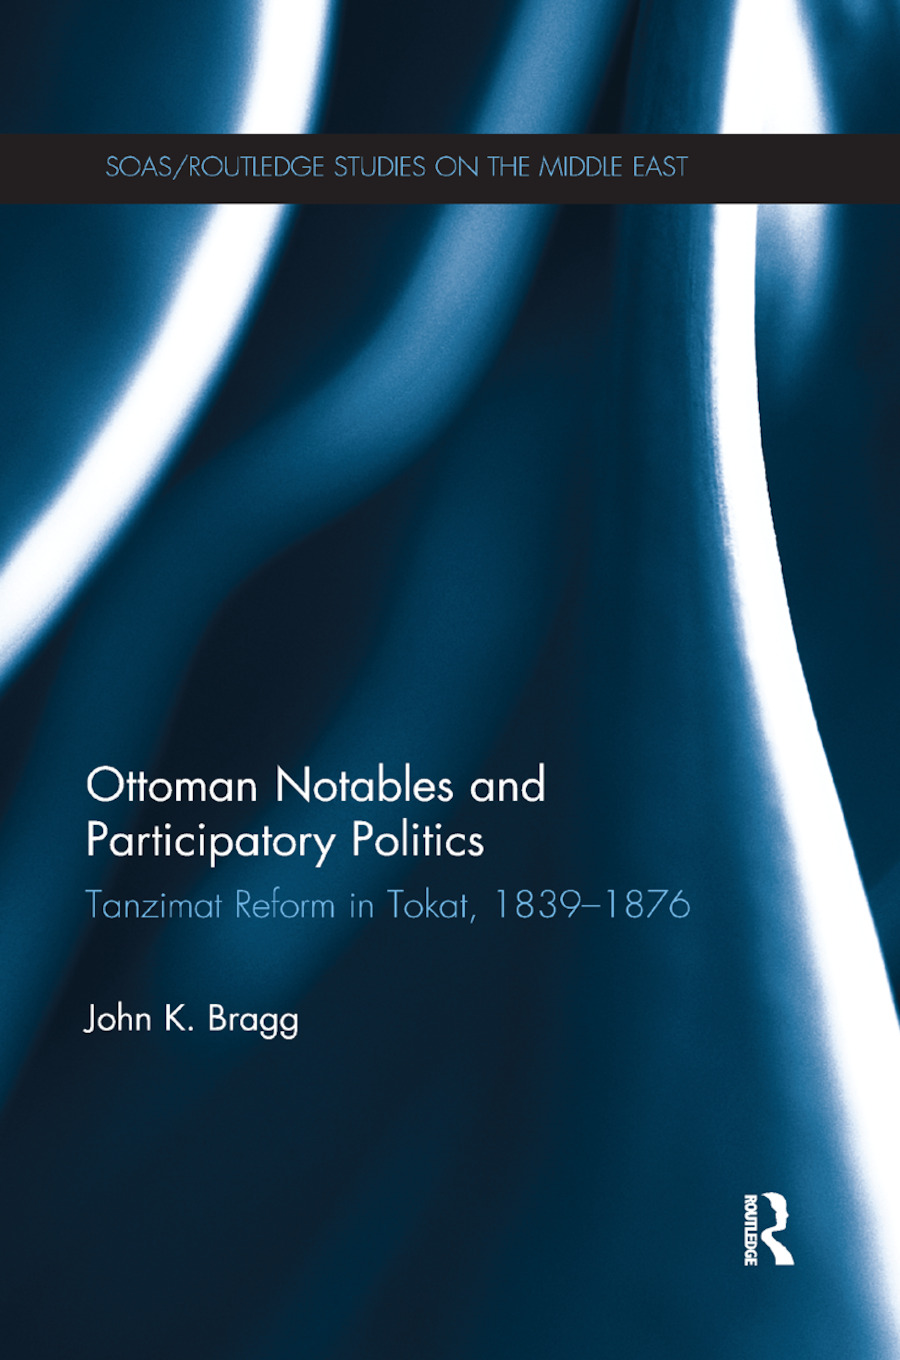 Ottoman Notables and Participatory Politics: Tanzimat Reform in Tokat, 1839-1876 book cover